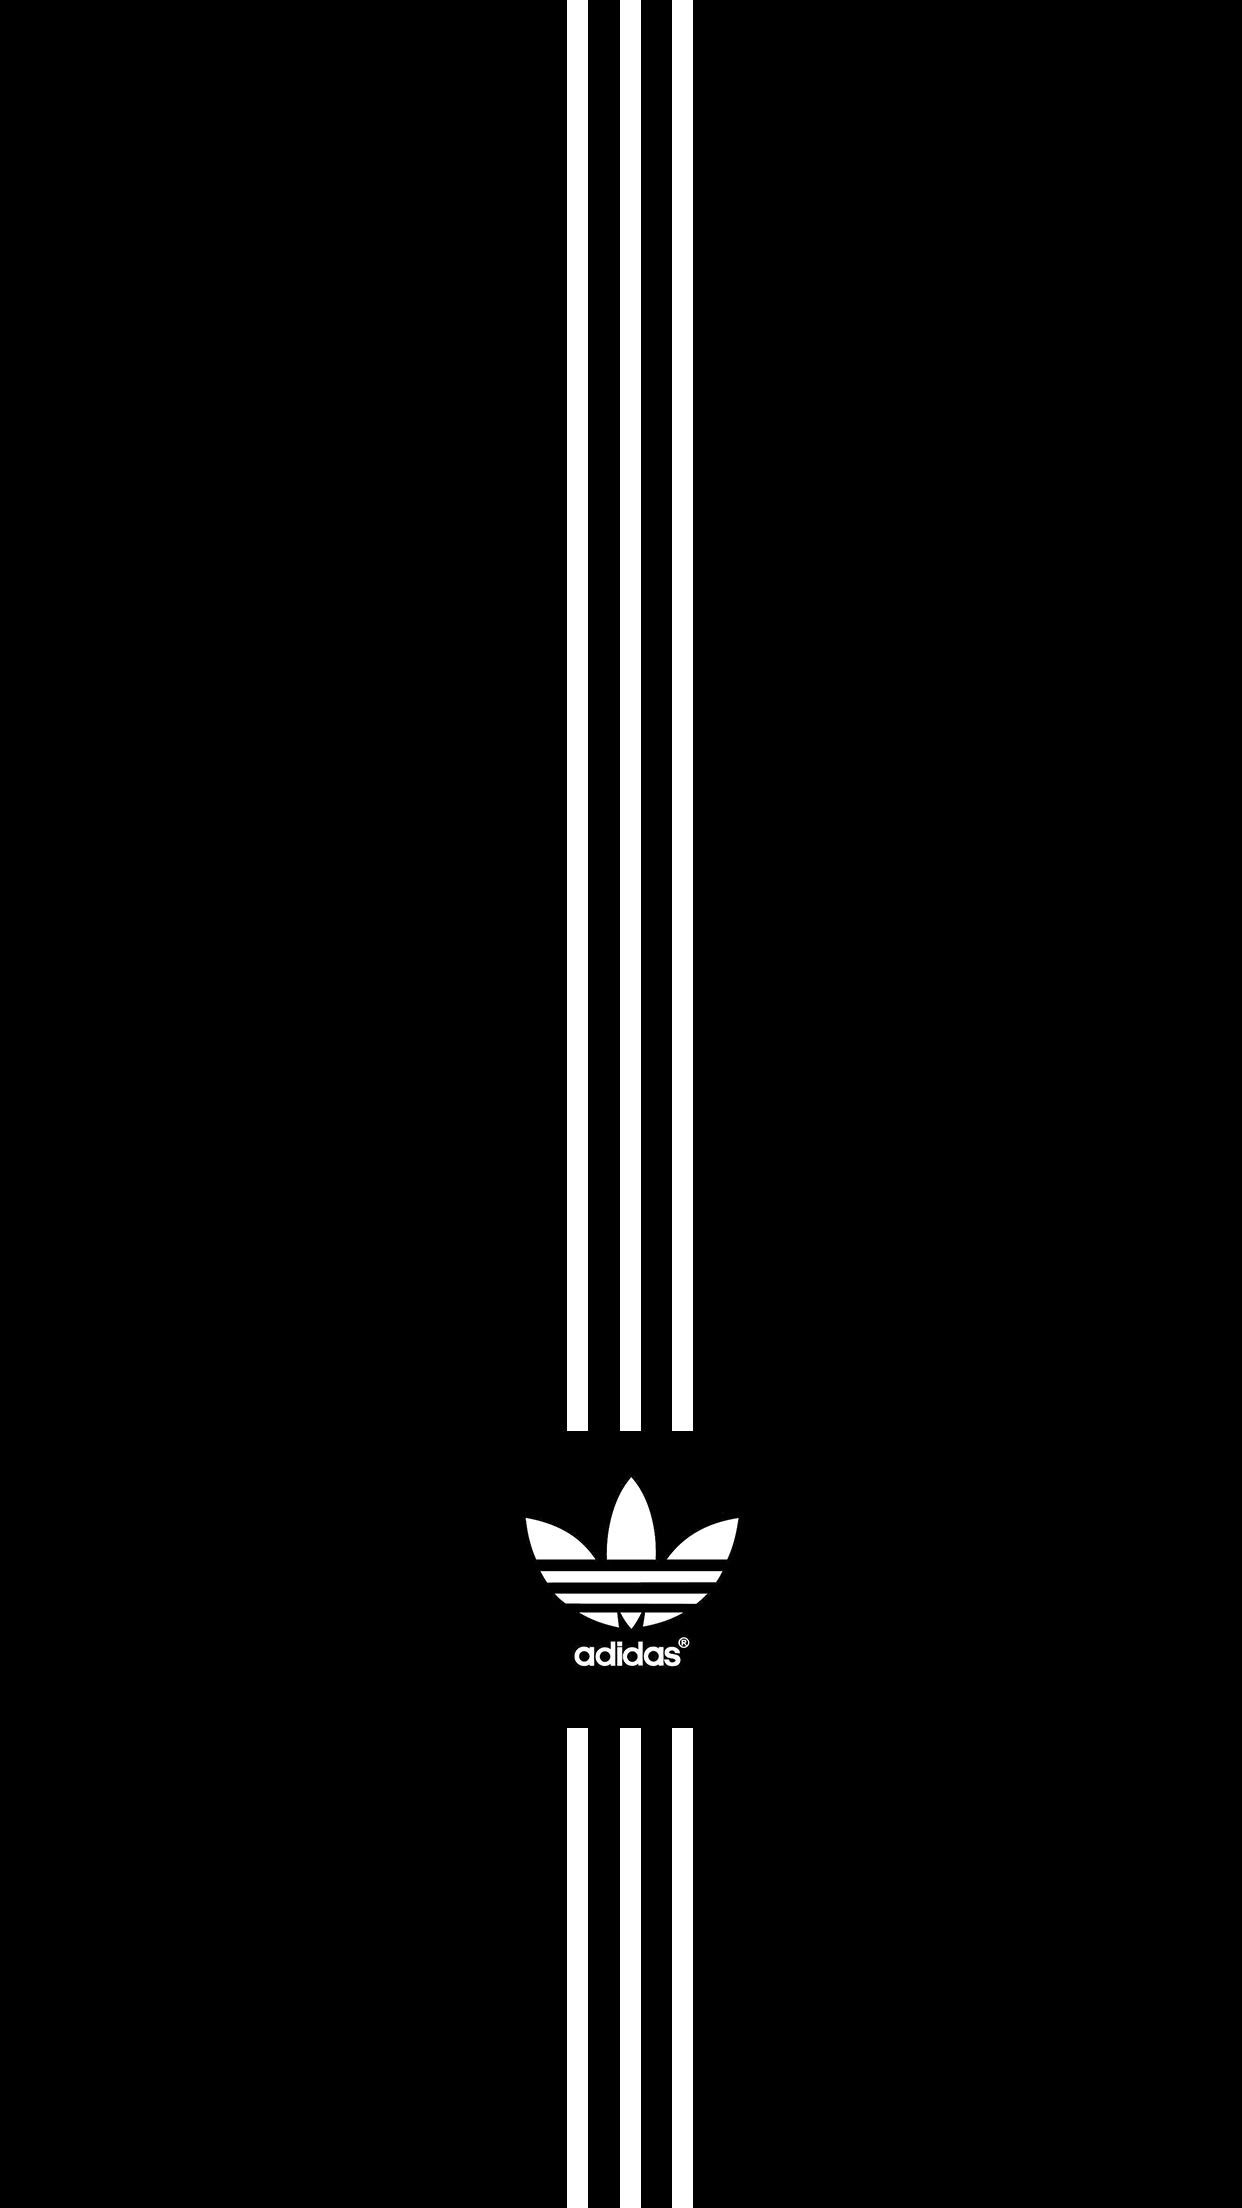 Adidas All Black iPhone Wallpaper